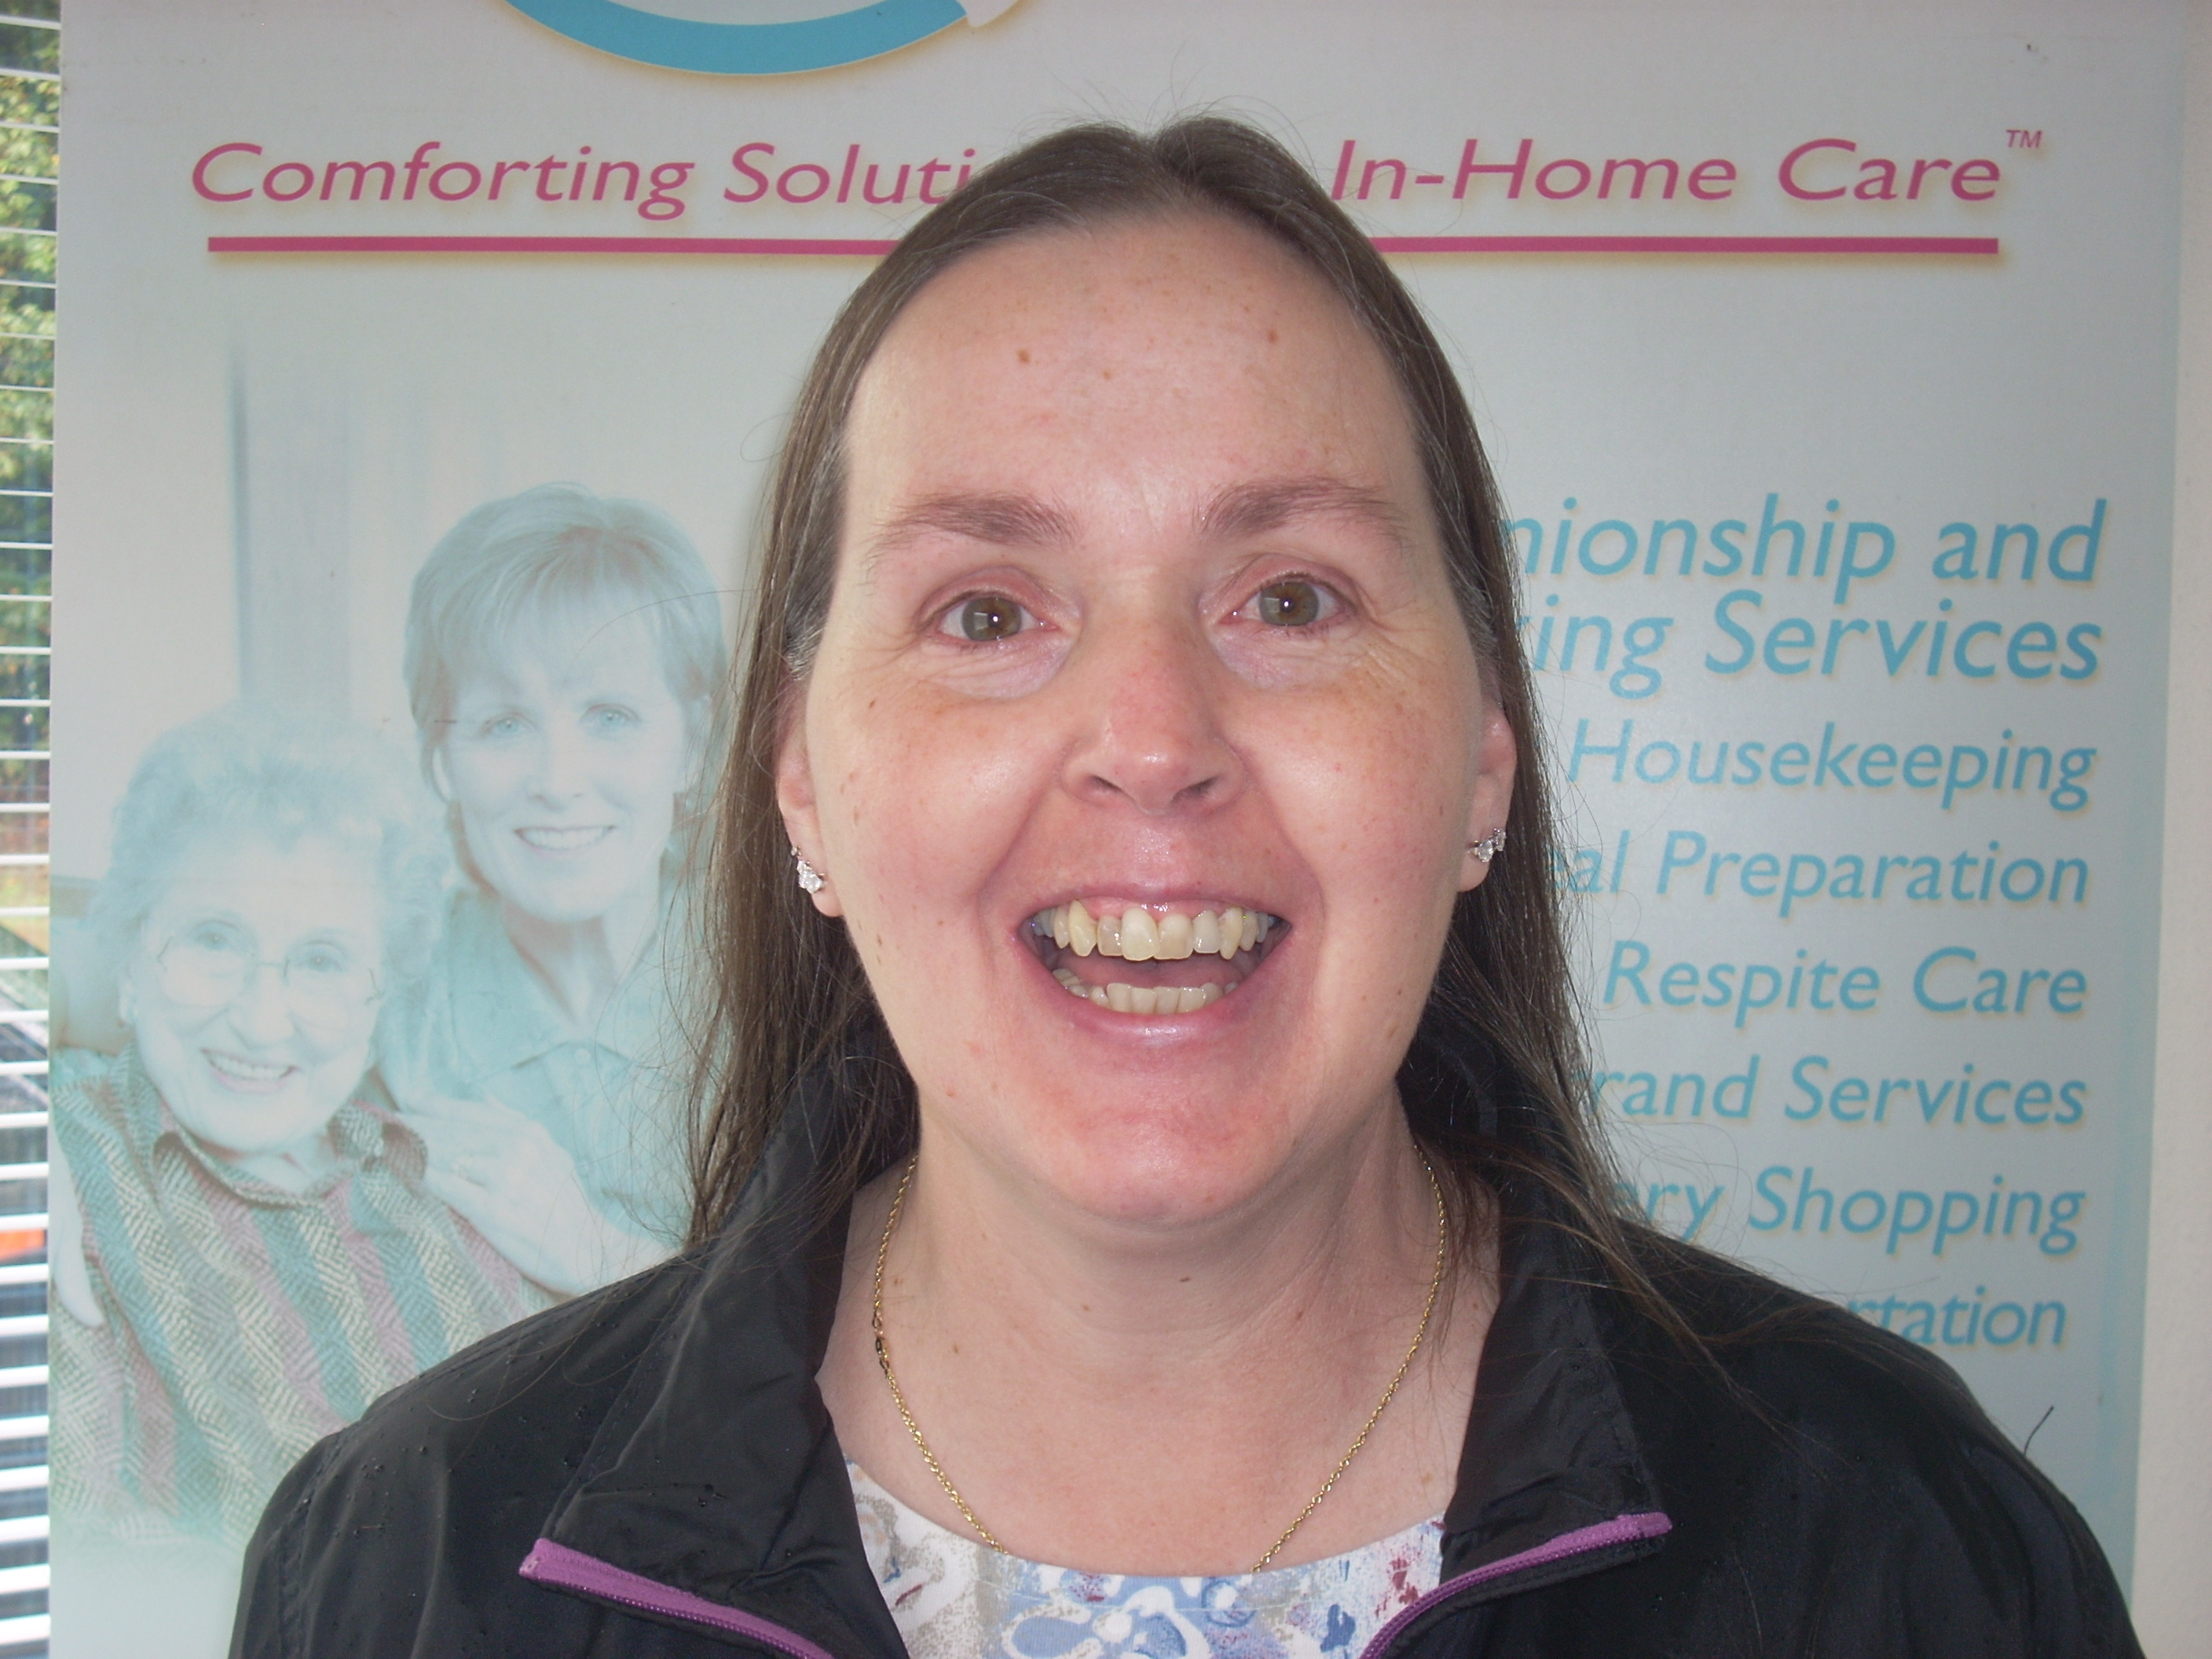 Leslie G. Comfort Keeper of the Month August 2020